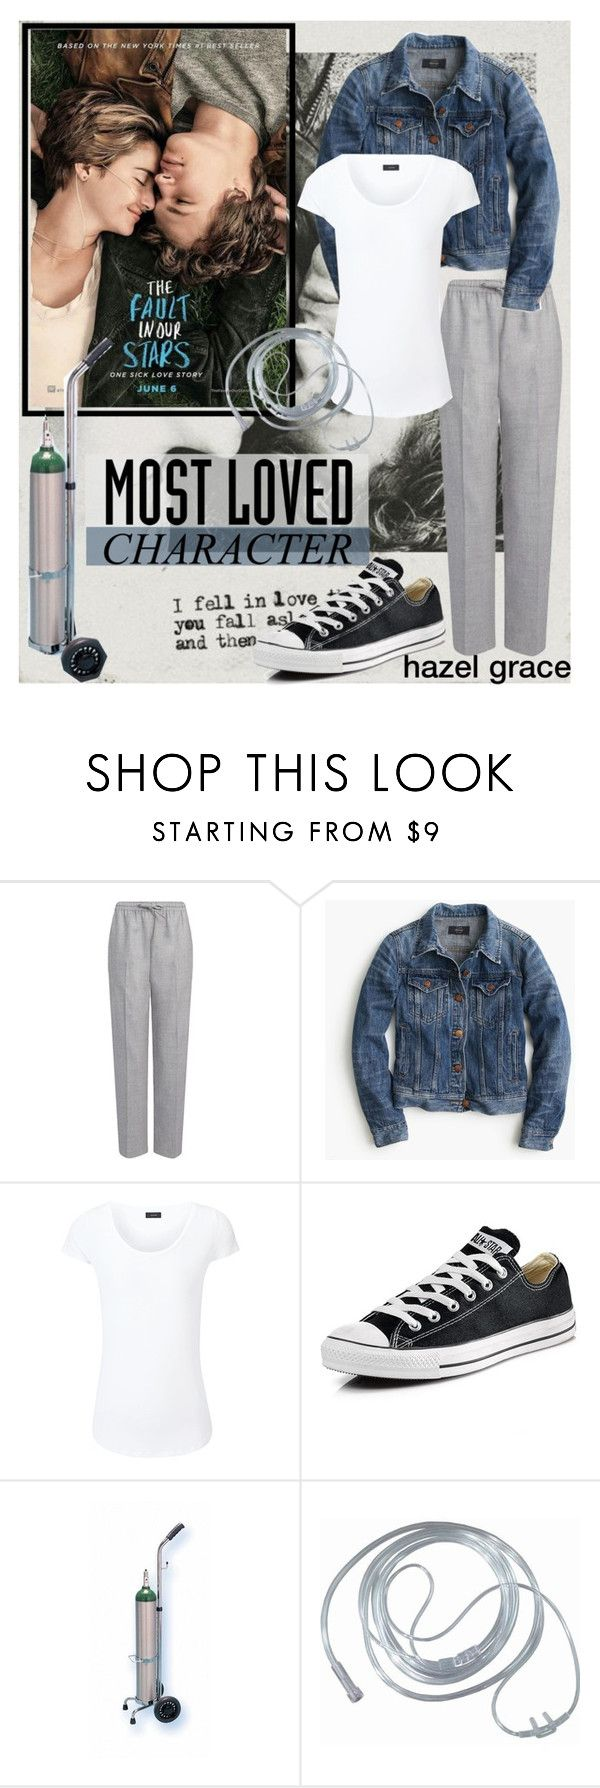 """hazel grace-shailene woodley"" by ginafhr ❤ liked on Polyvore featuring Joseph, J.Crew, Converse, outfit, tumblr, tfios and polyvorecontest"